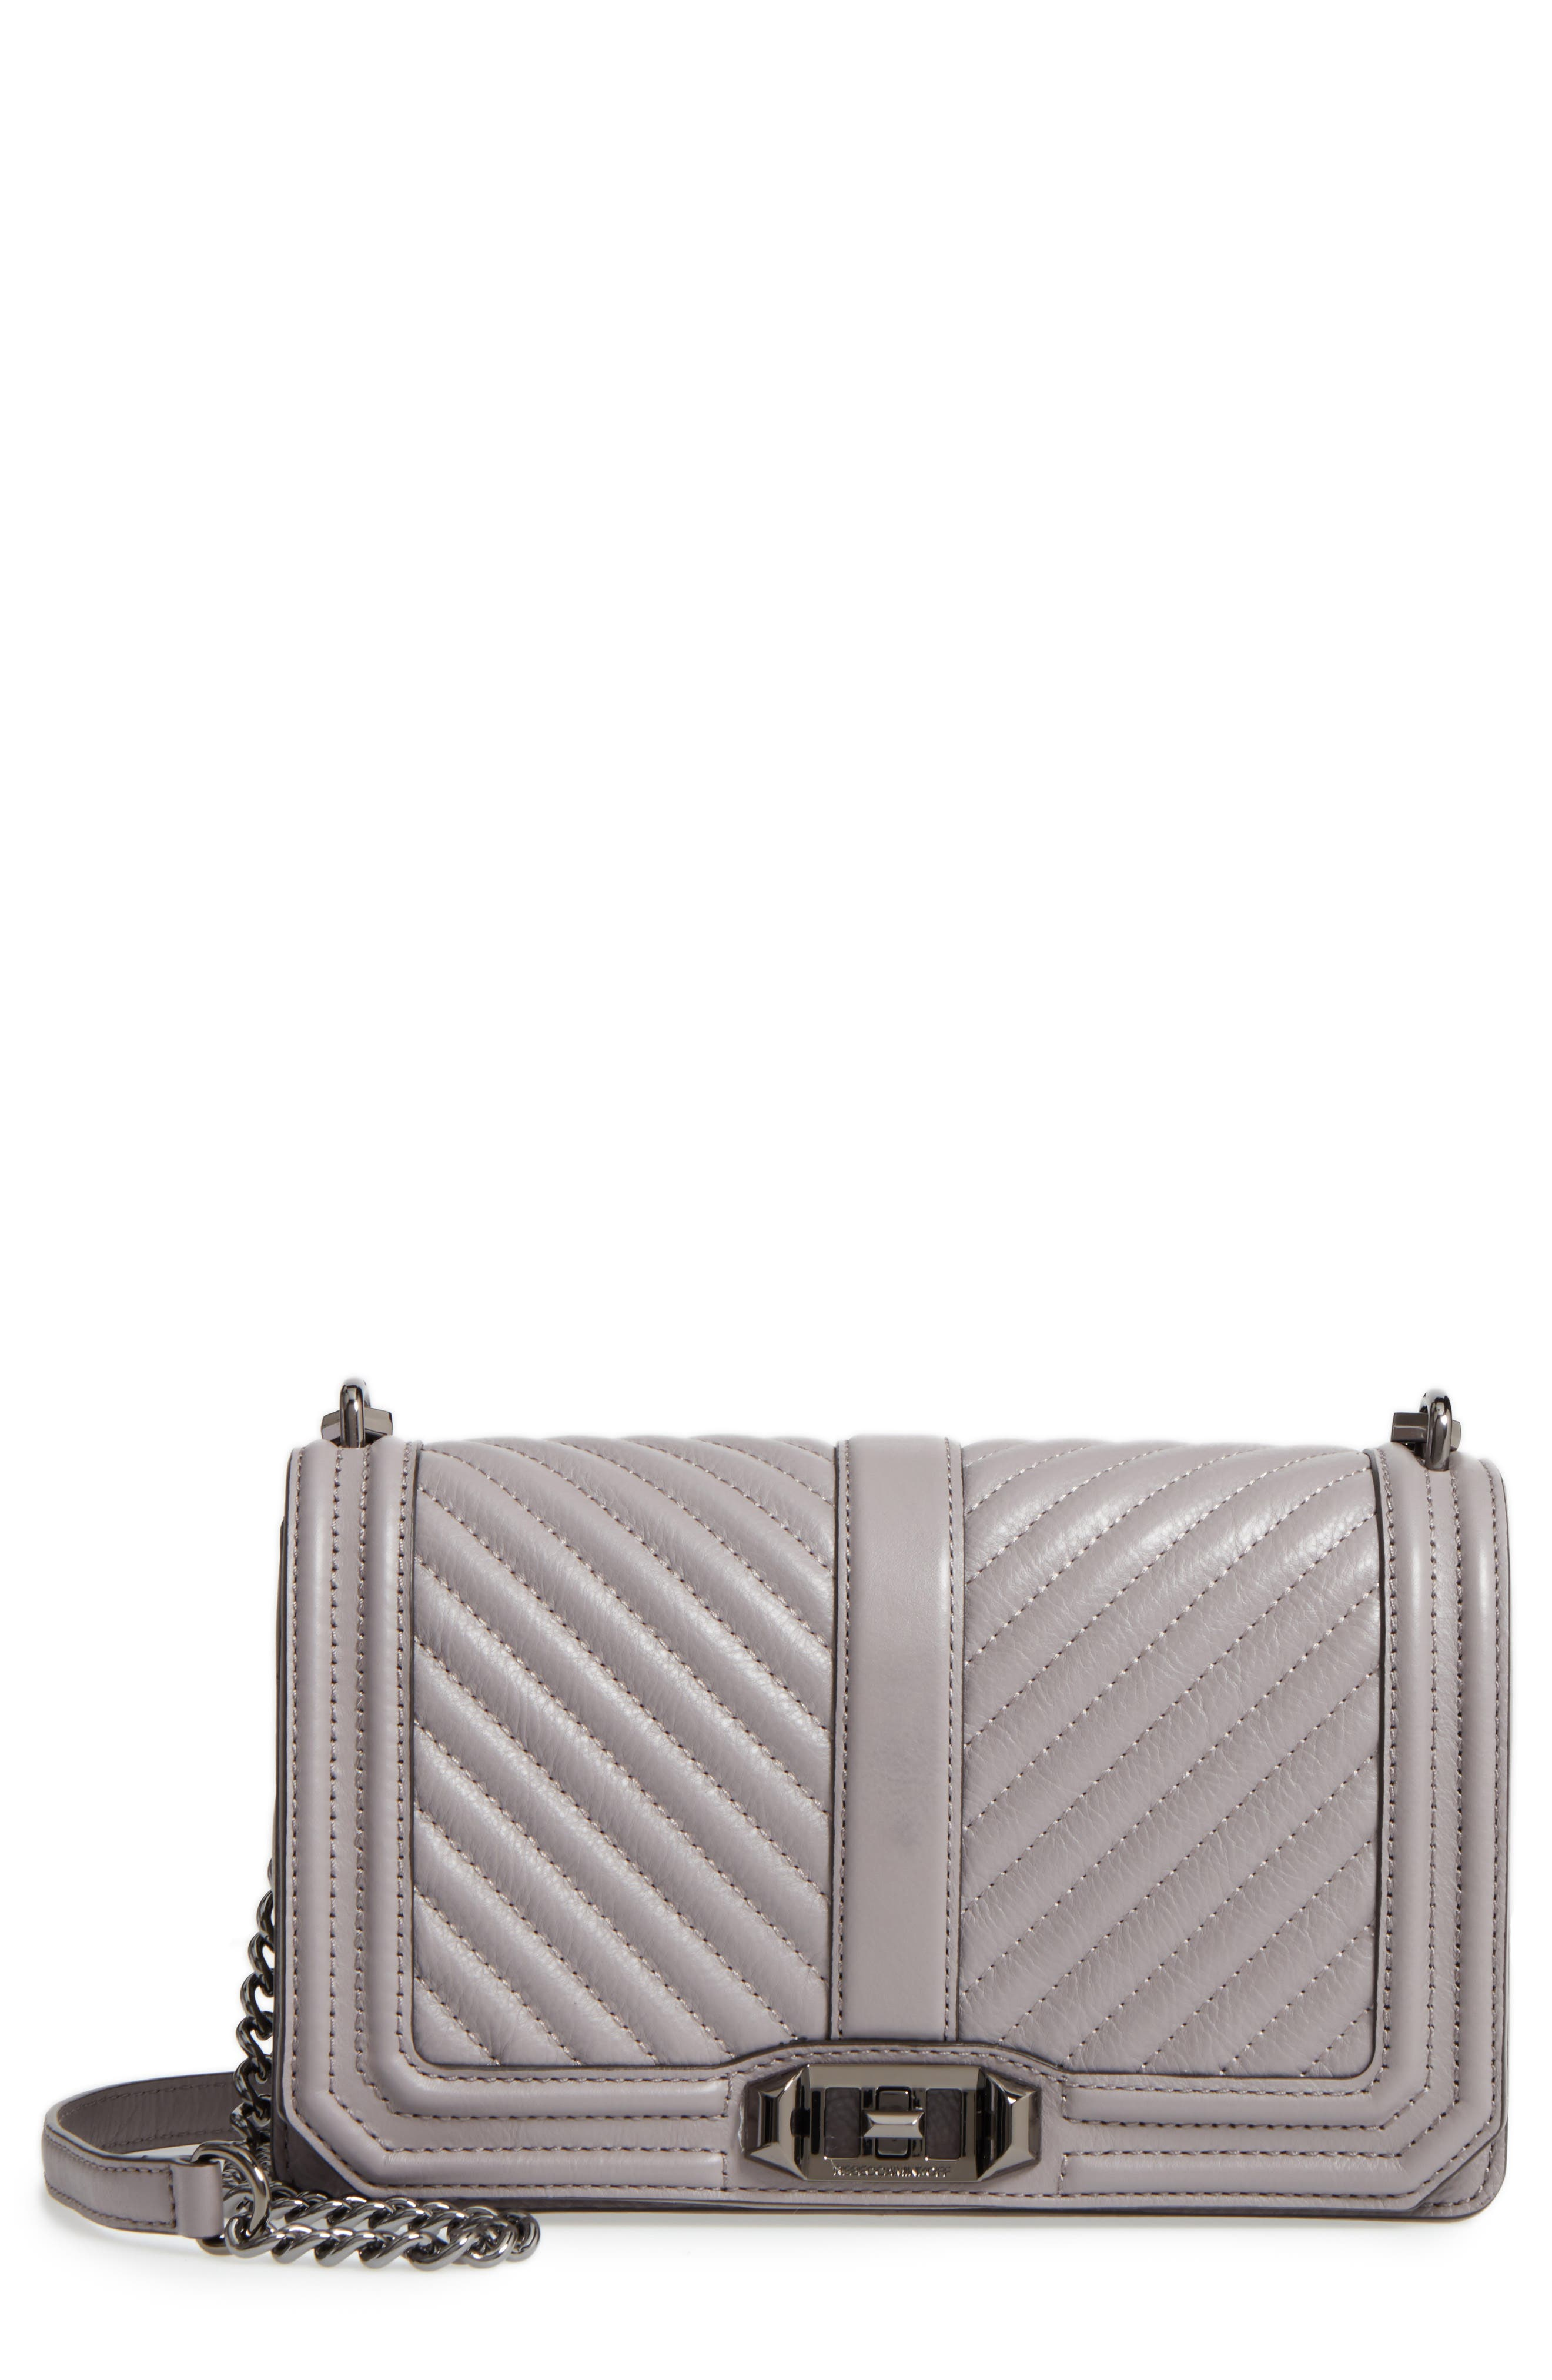 'CHEVRON QUILTED LOVE' CROSSBODY BAG - GREY